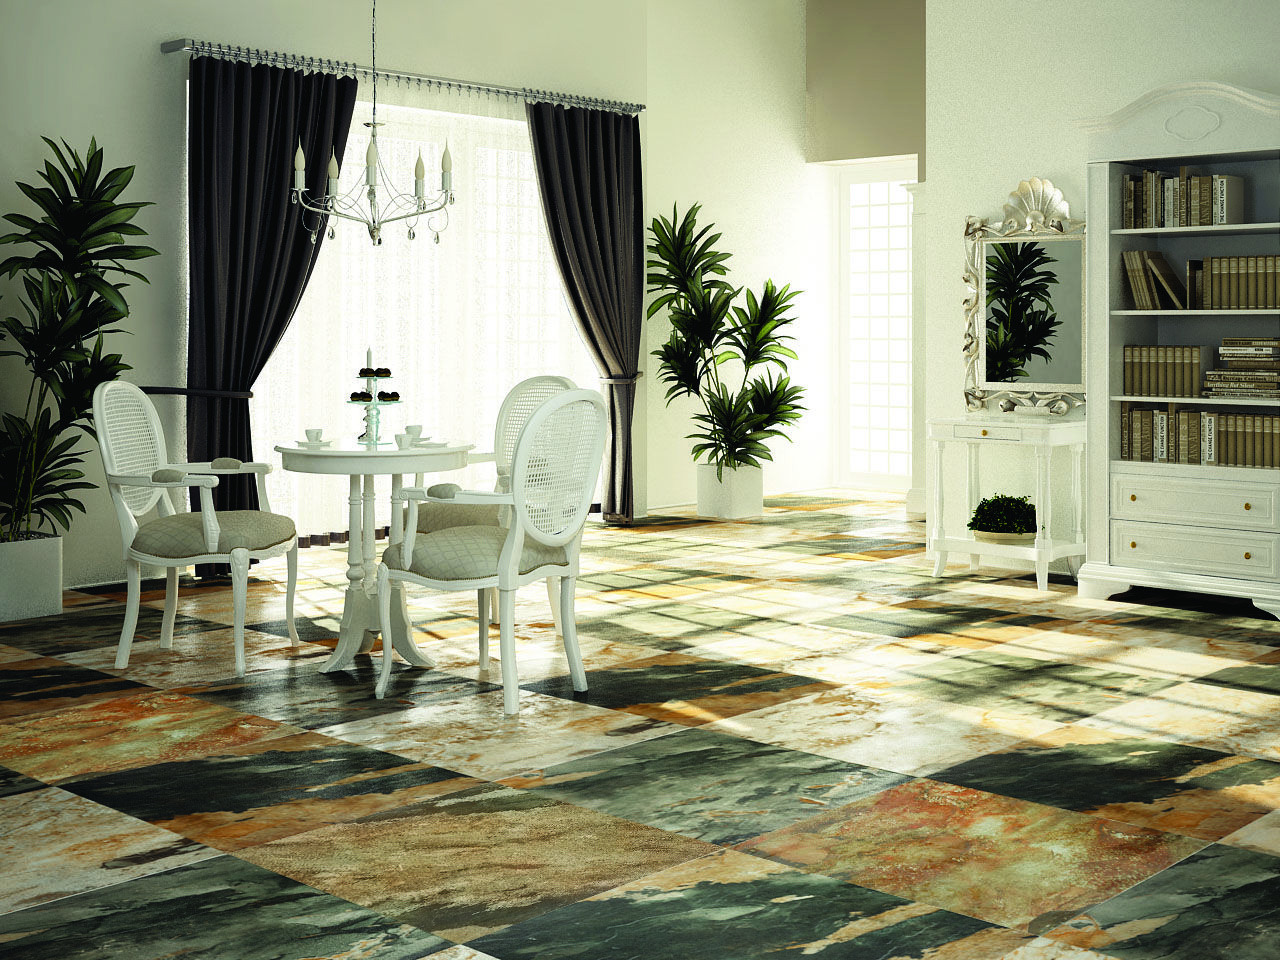 Mayan Moss (Floor Tile), Size 600x600 mm, For more